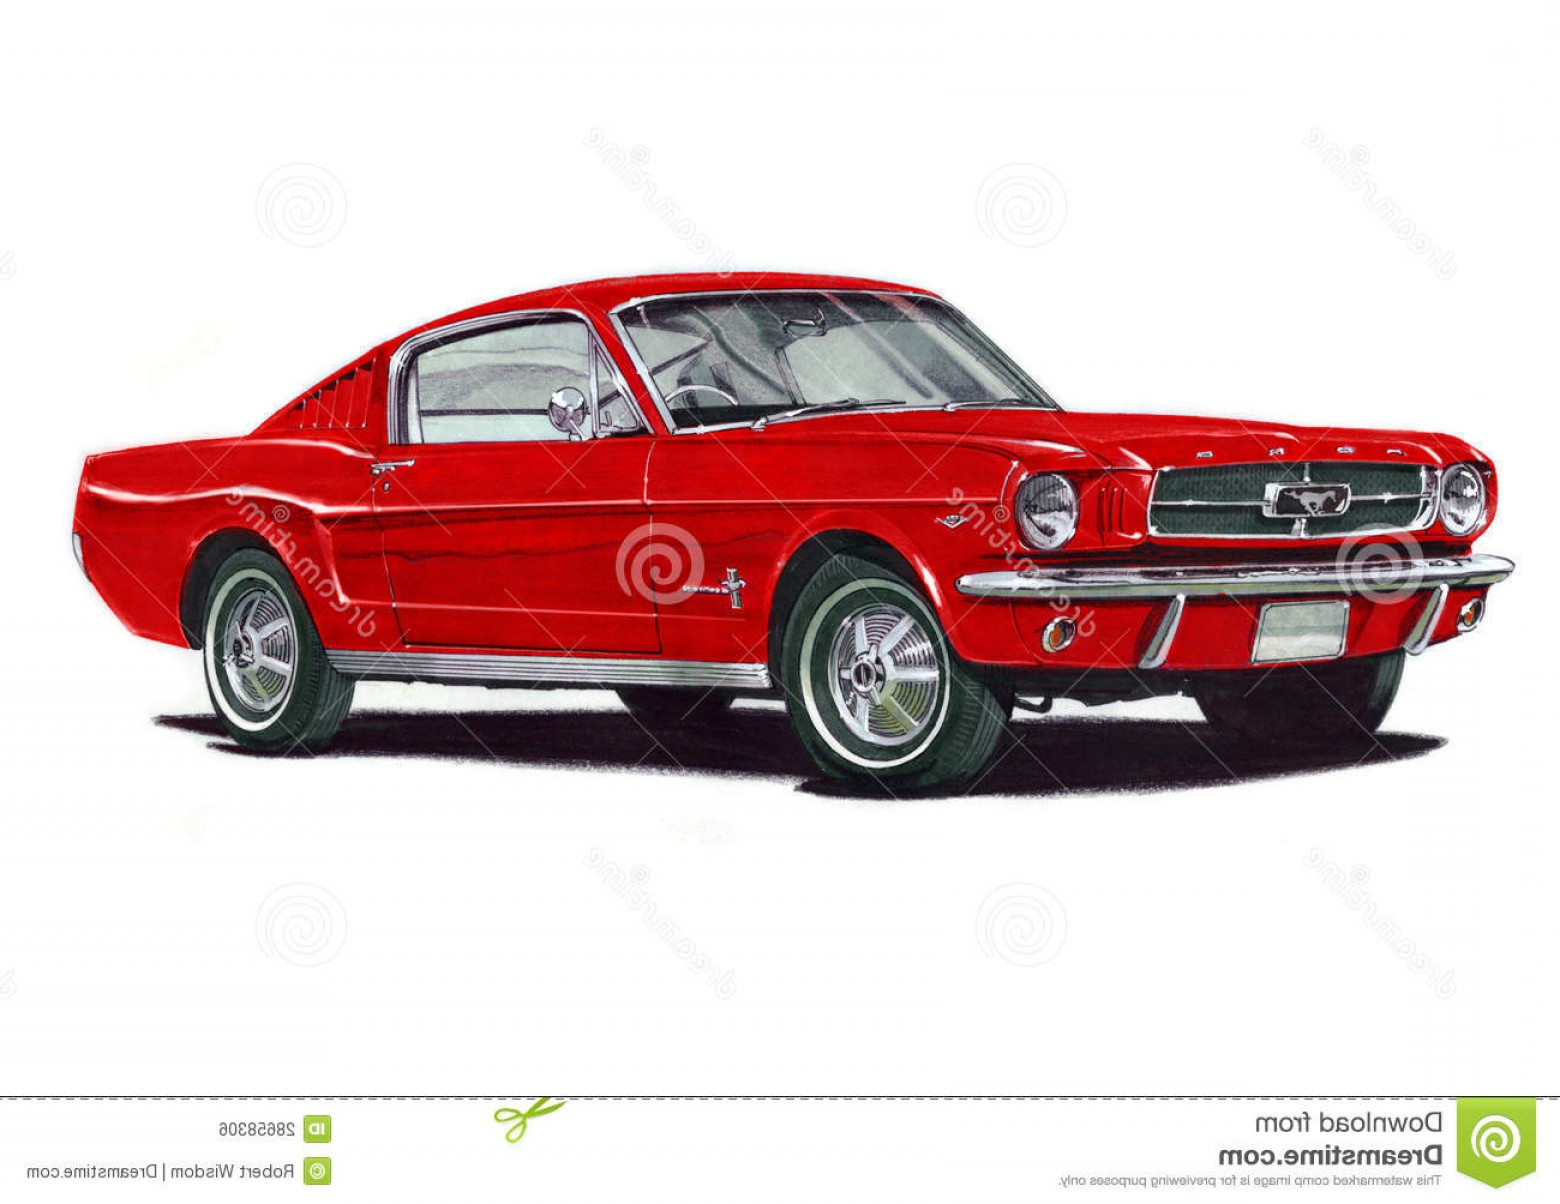 2005 Ford Mustang GT Drawing Vector: Royalty Free Stock Image Ford Mustang Fastback Image